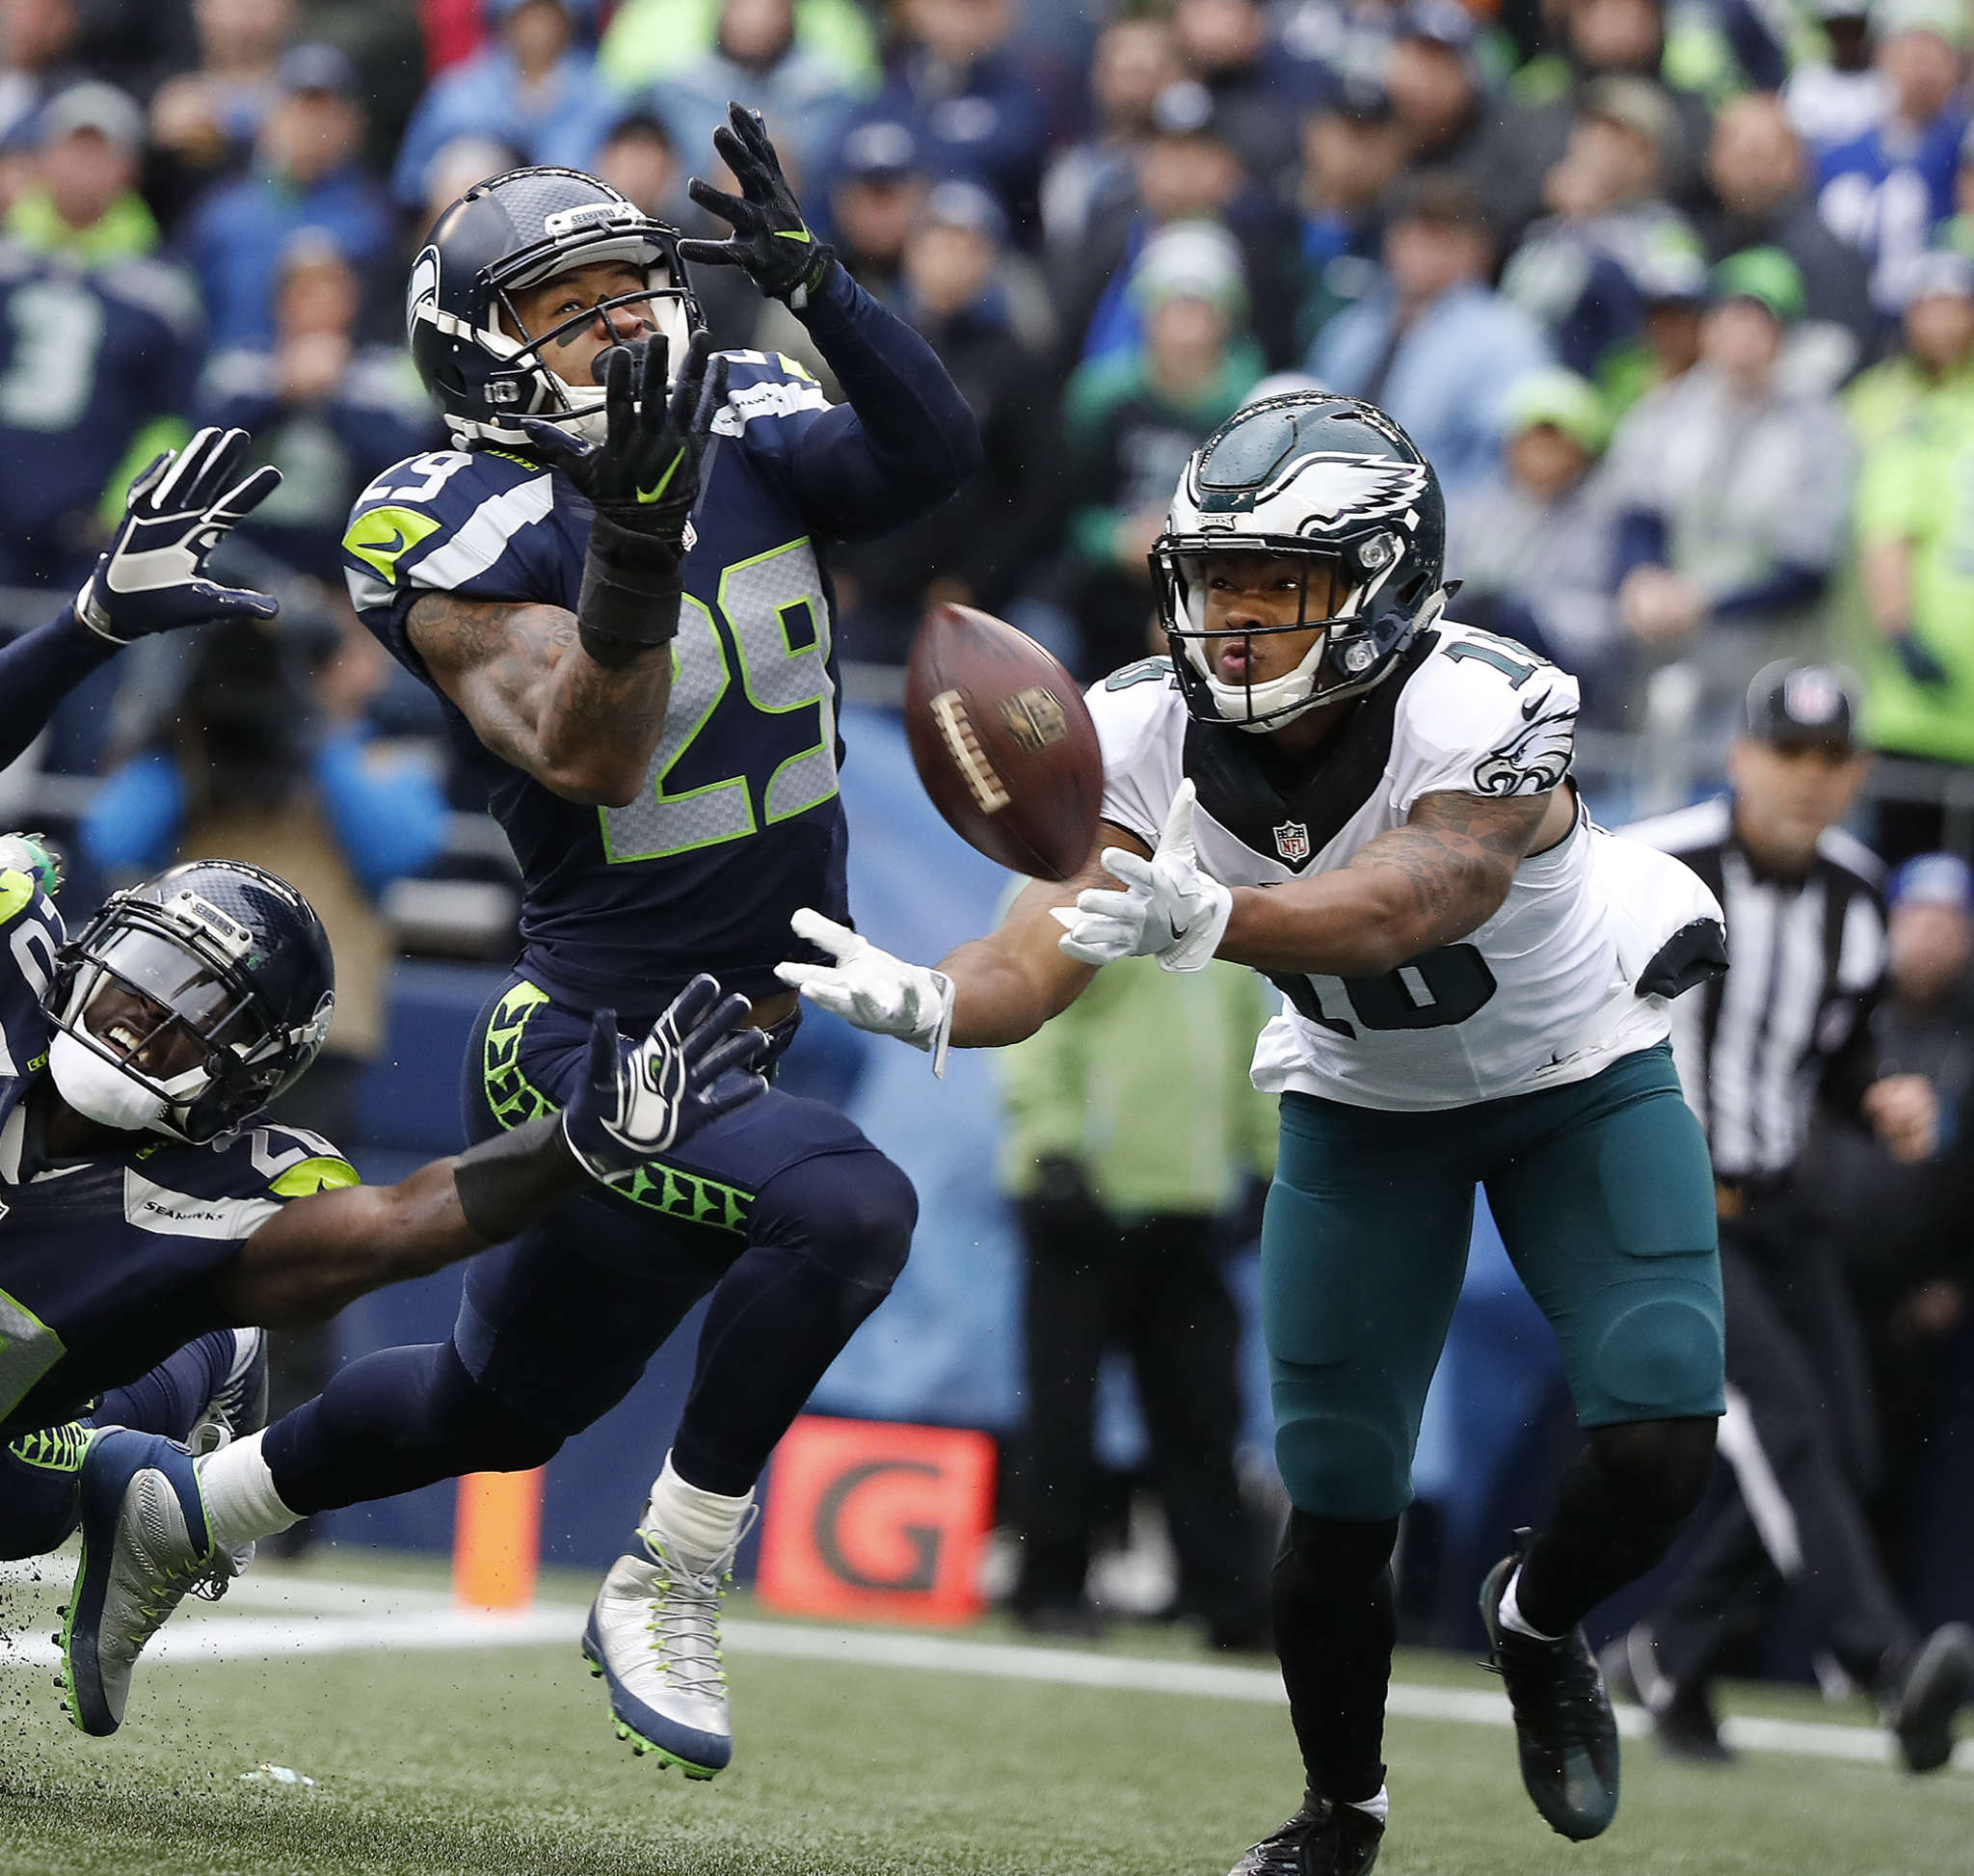 Eagles´ Bryce Treggs fails to catch pass as Seahawks´ Jeremy Lane (left) and Earl Thomas defend. DAVID MAIALETTI /Staff Photographer